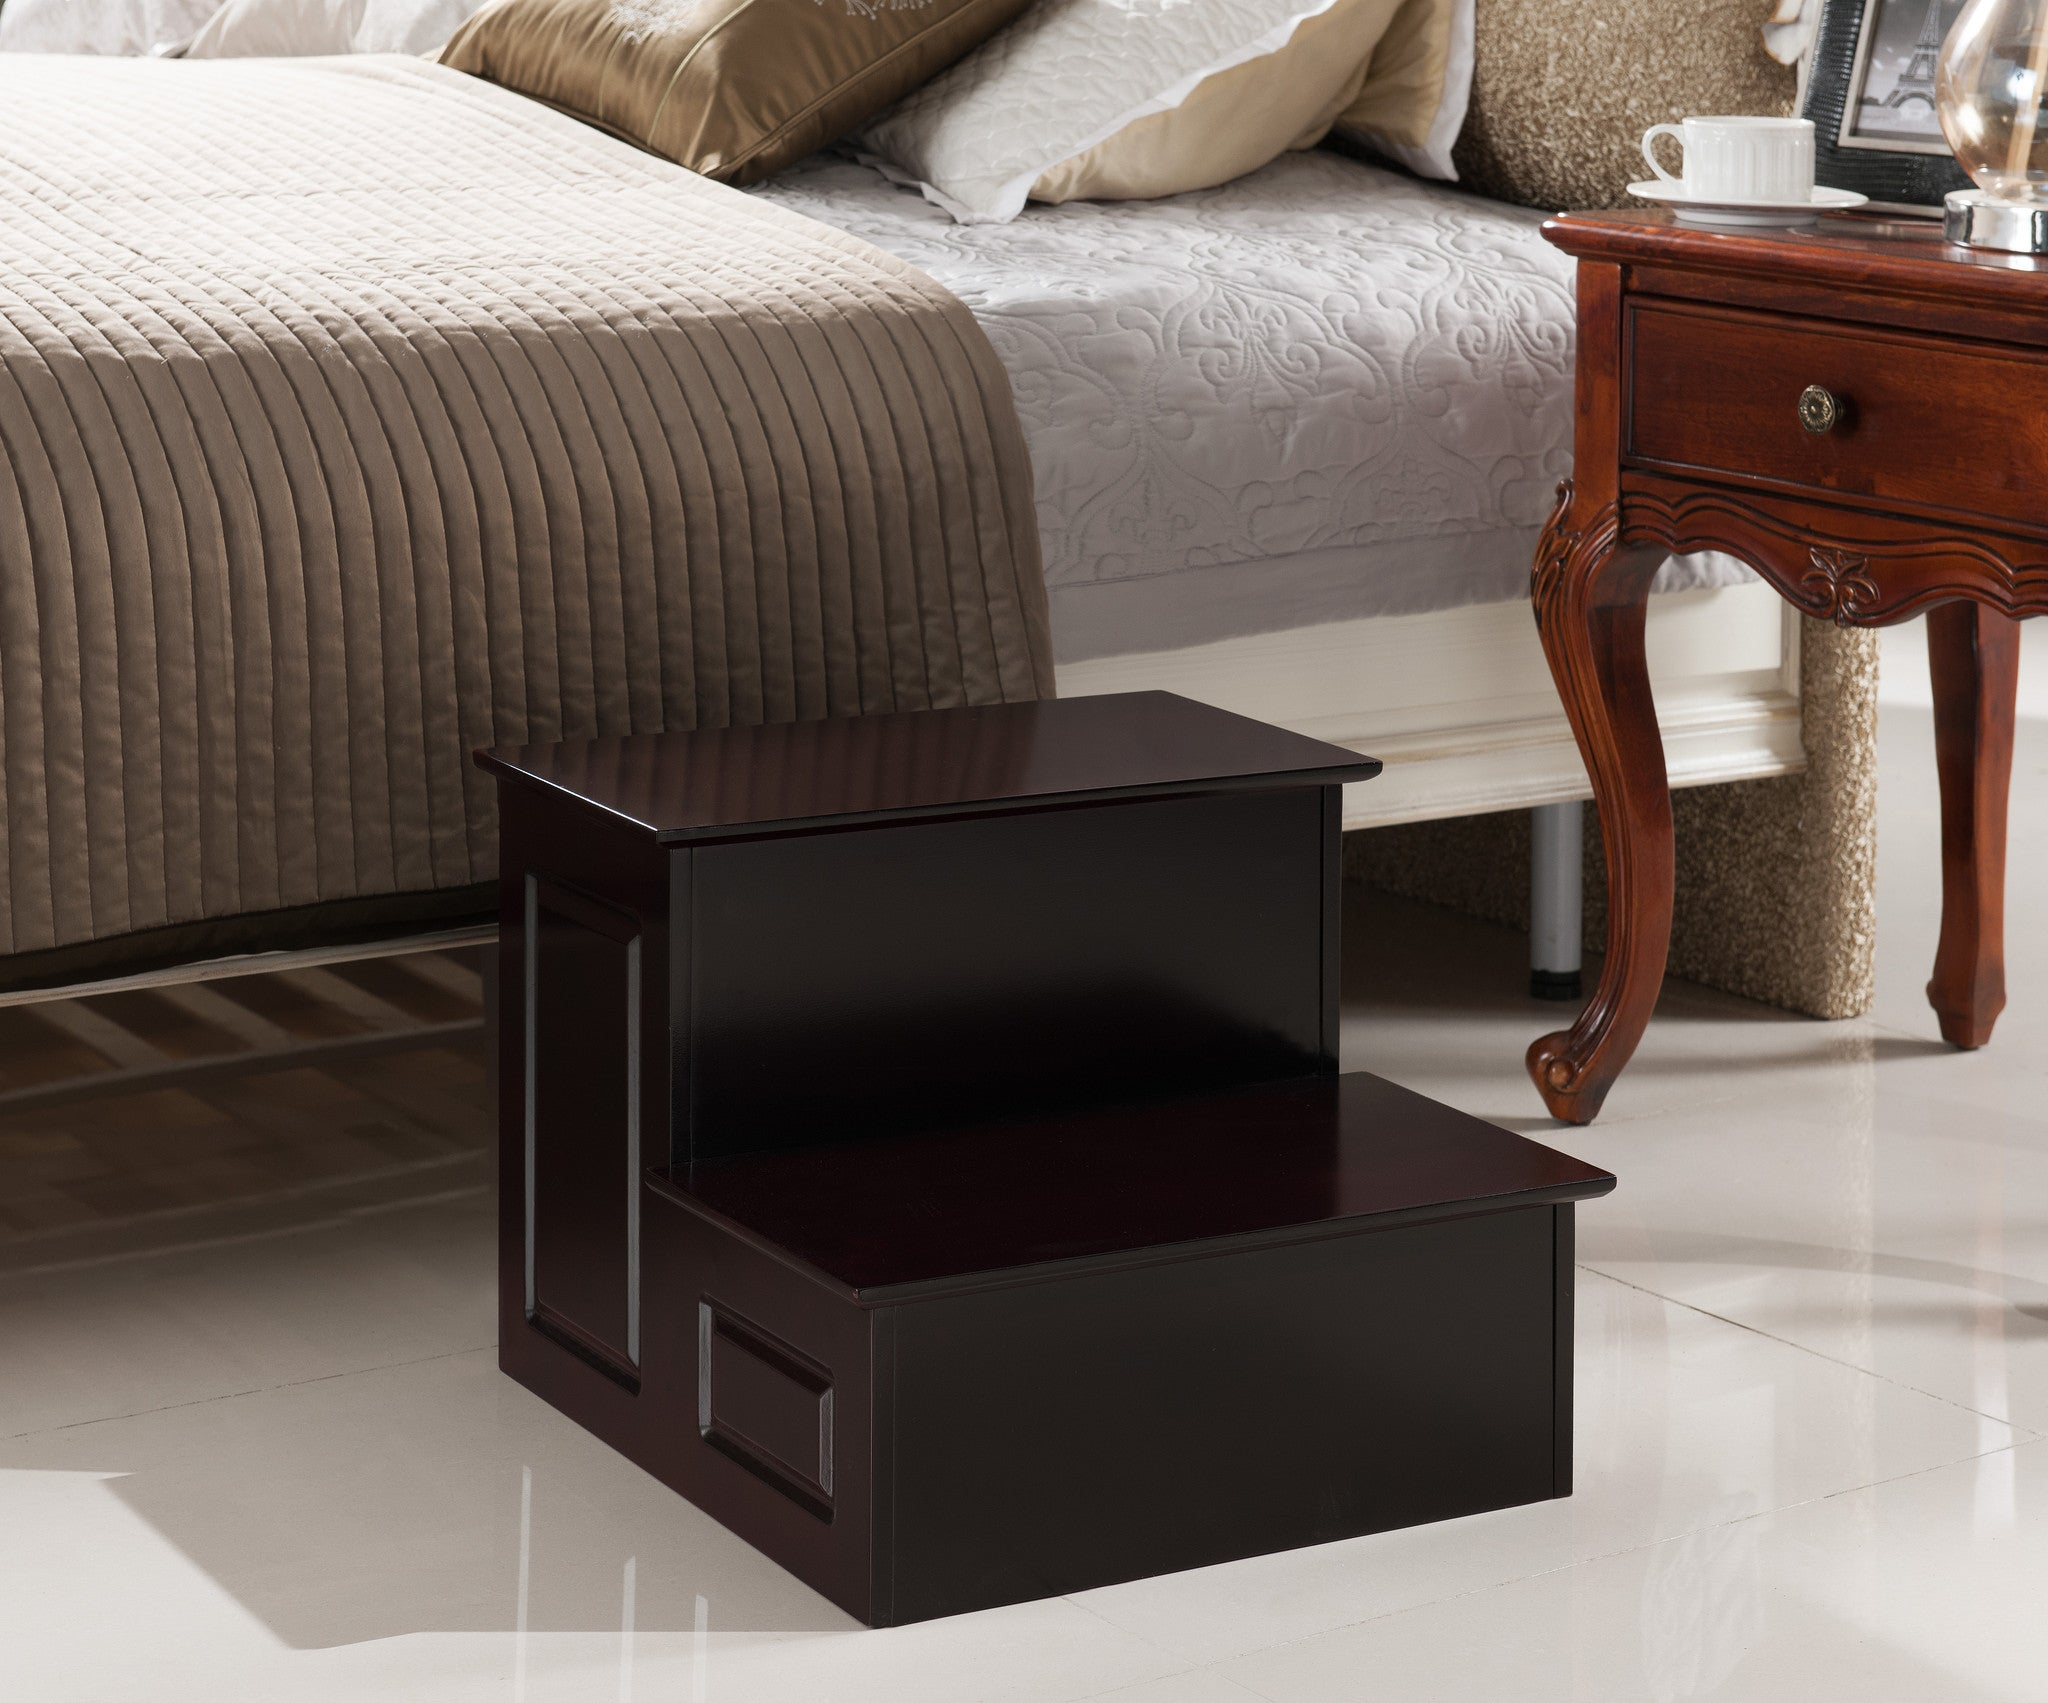 Pilaster Designs Cherry Finish Large Wood Bedroom Step Stool